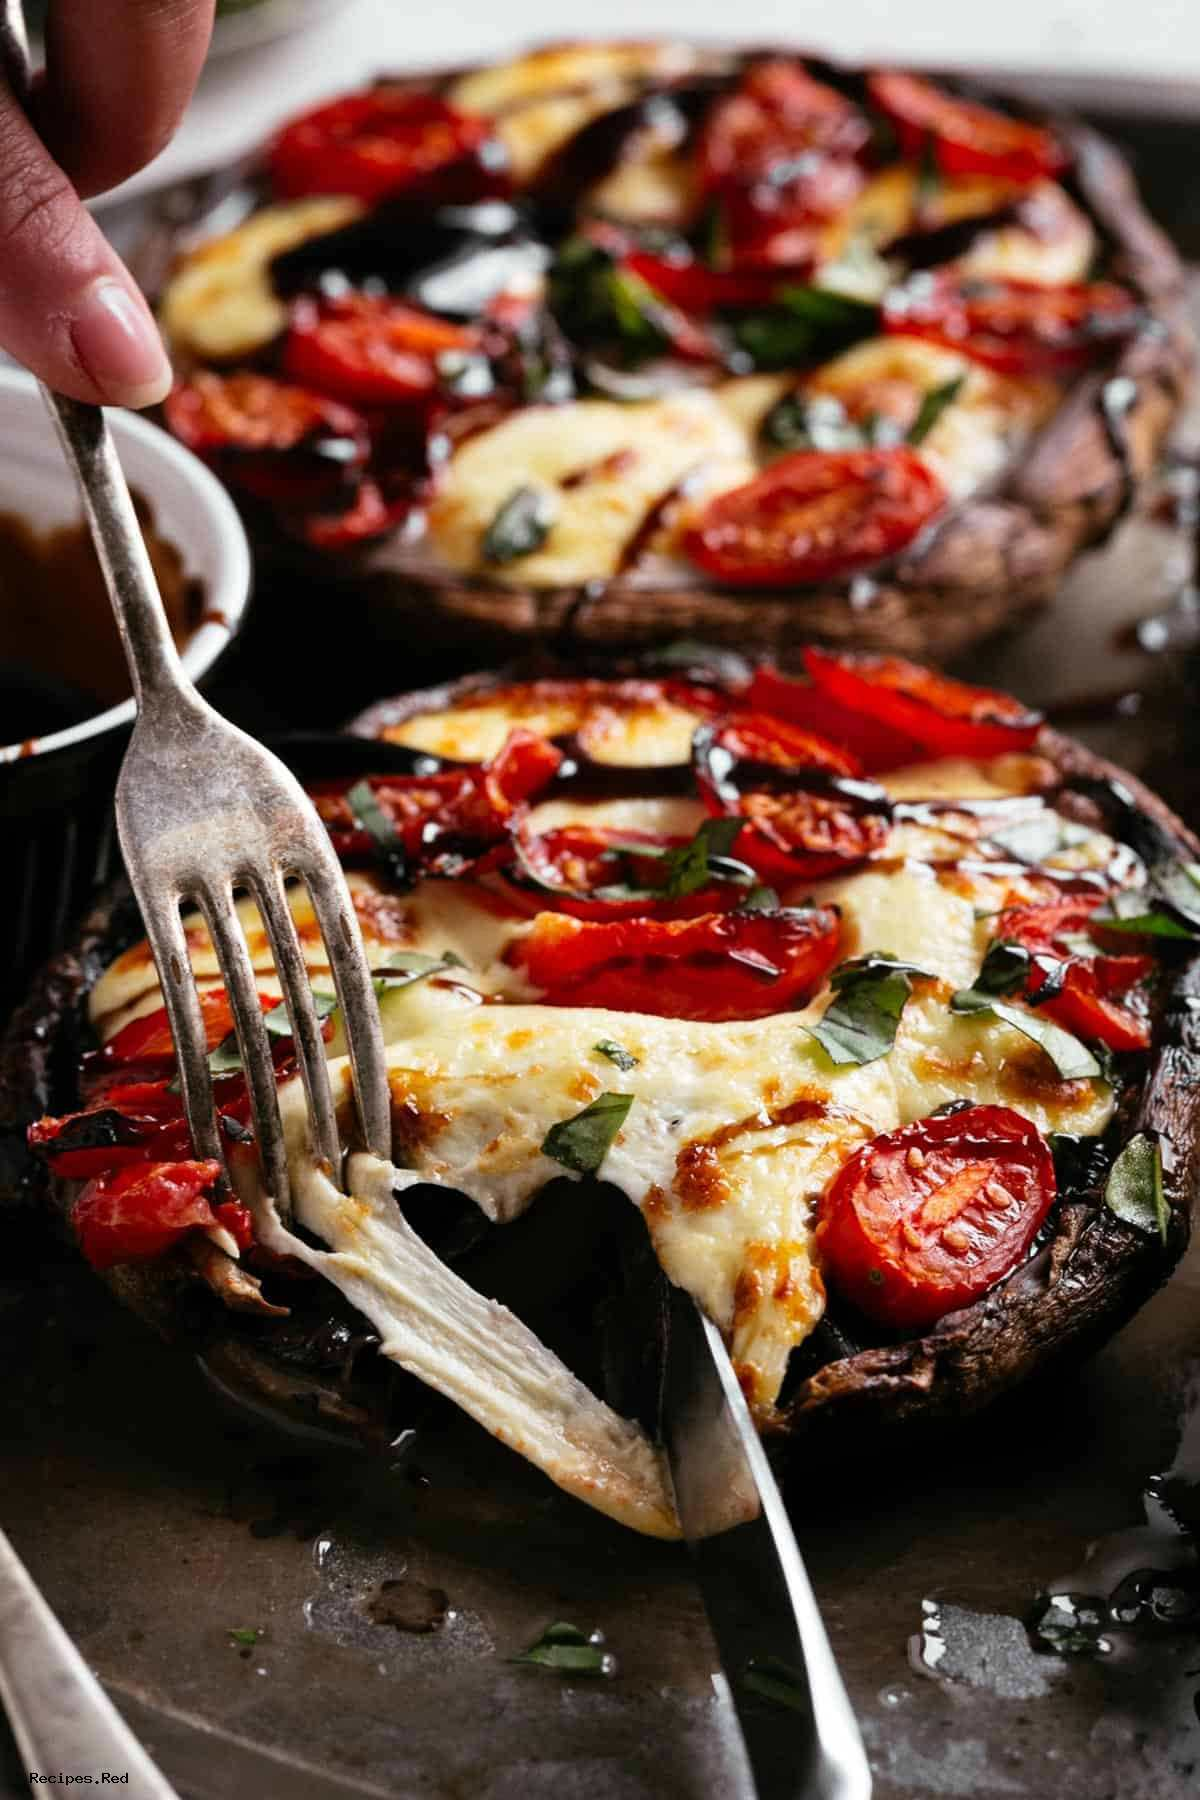 HOW TO MAKE CAPRESE STUFFED PORTOBELLO MUSHROOMS